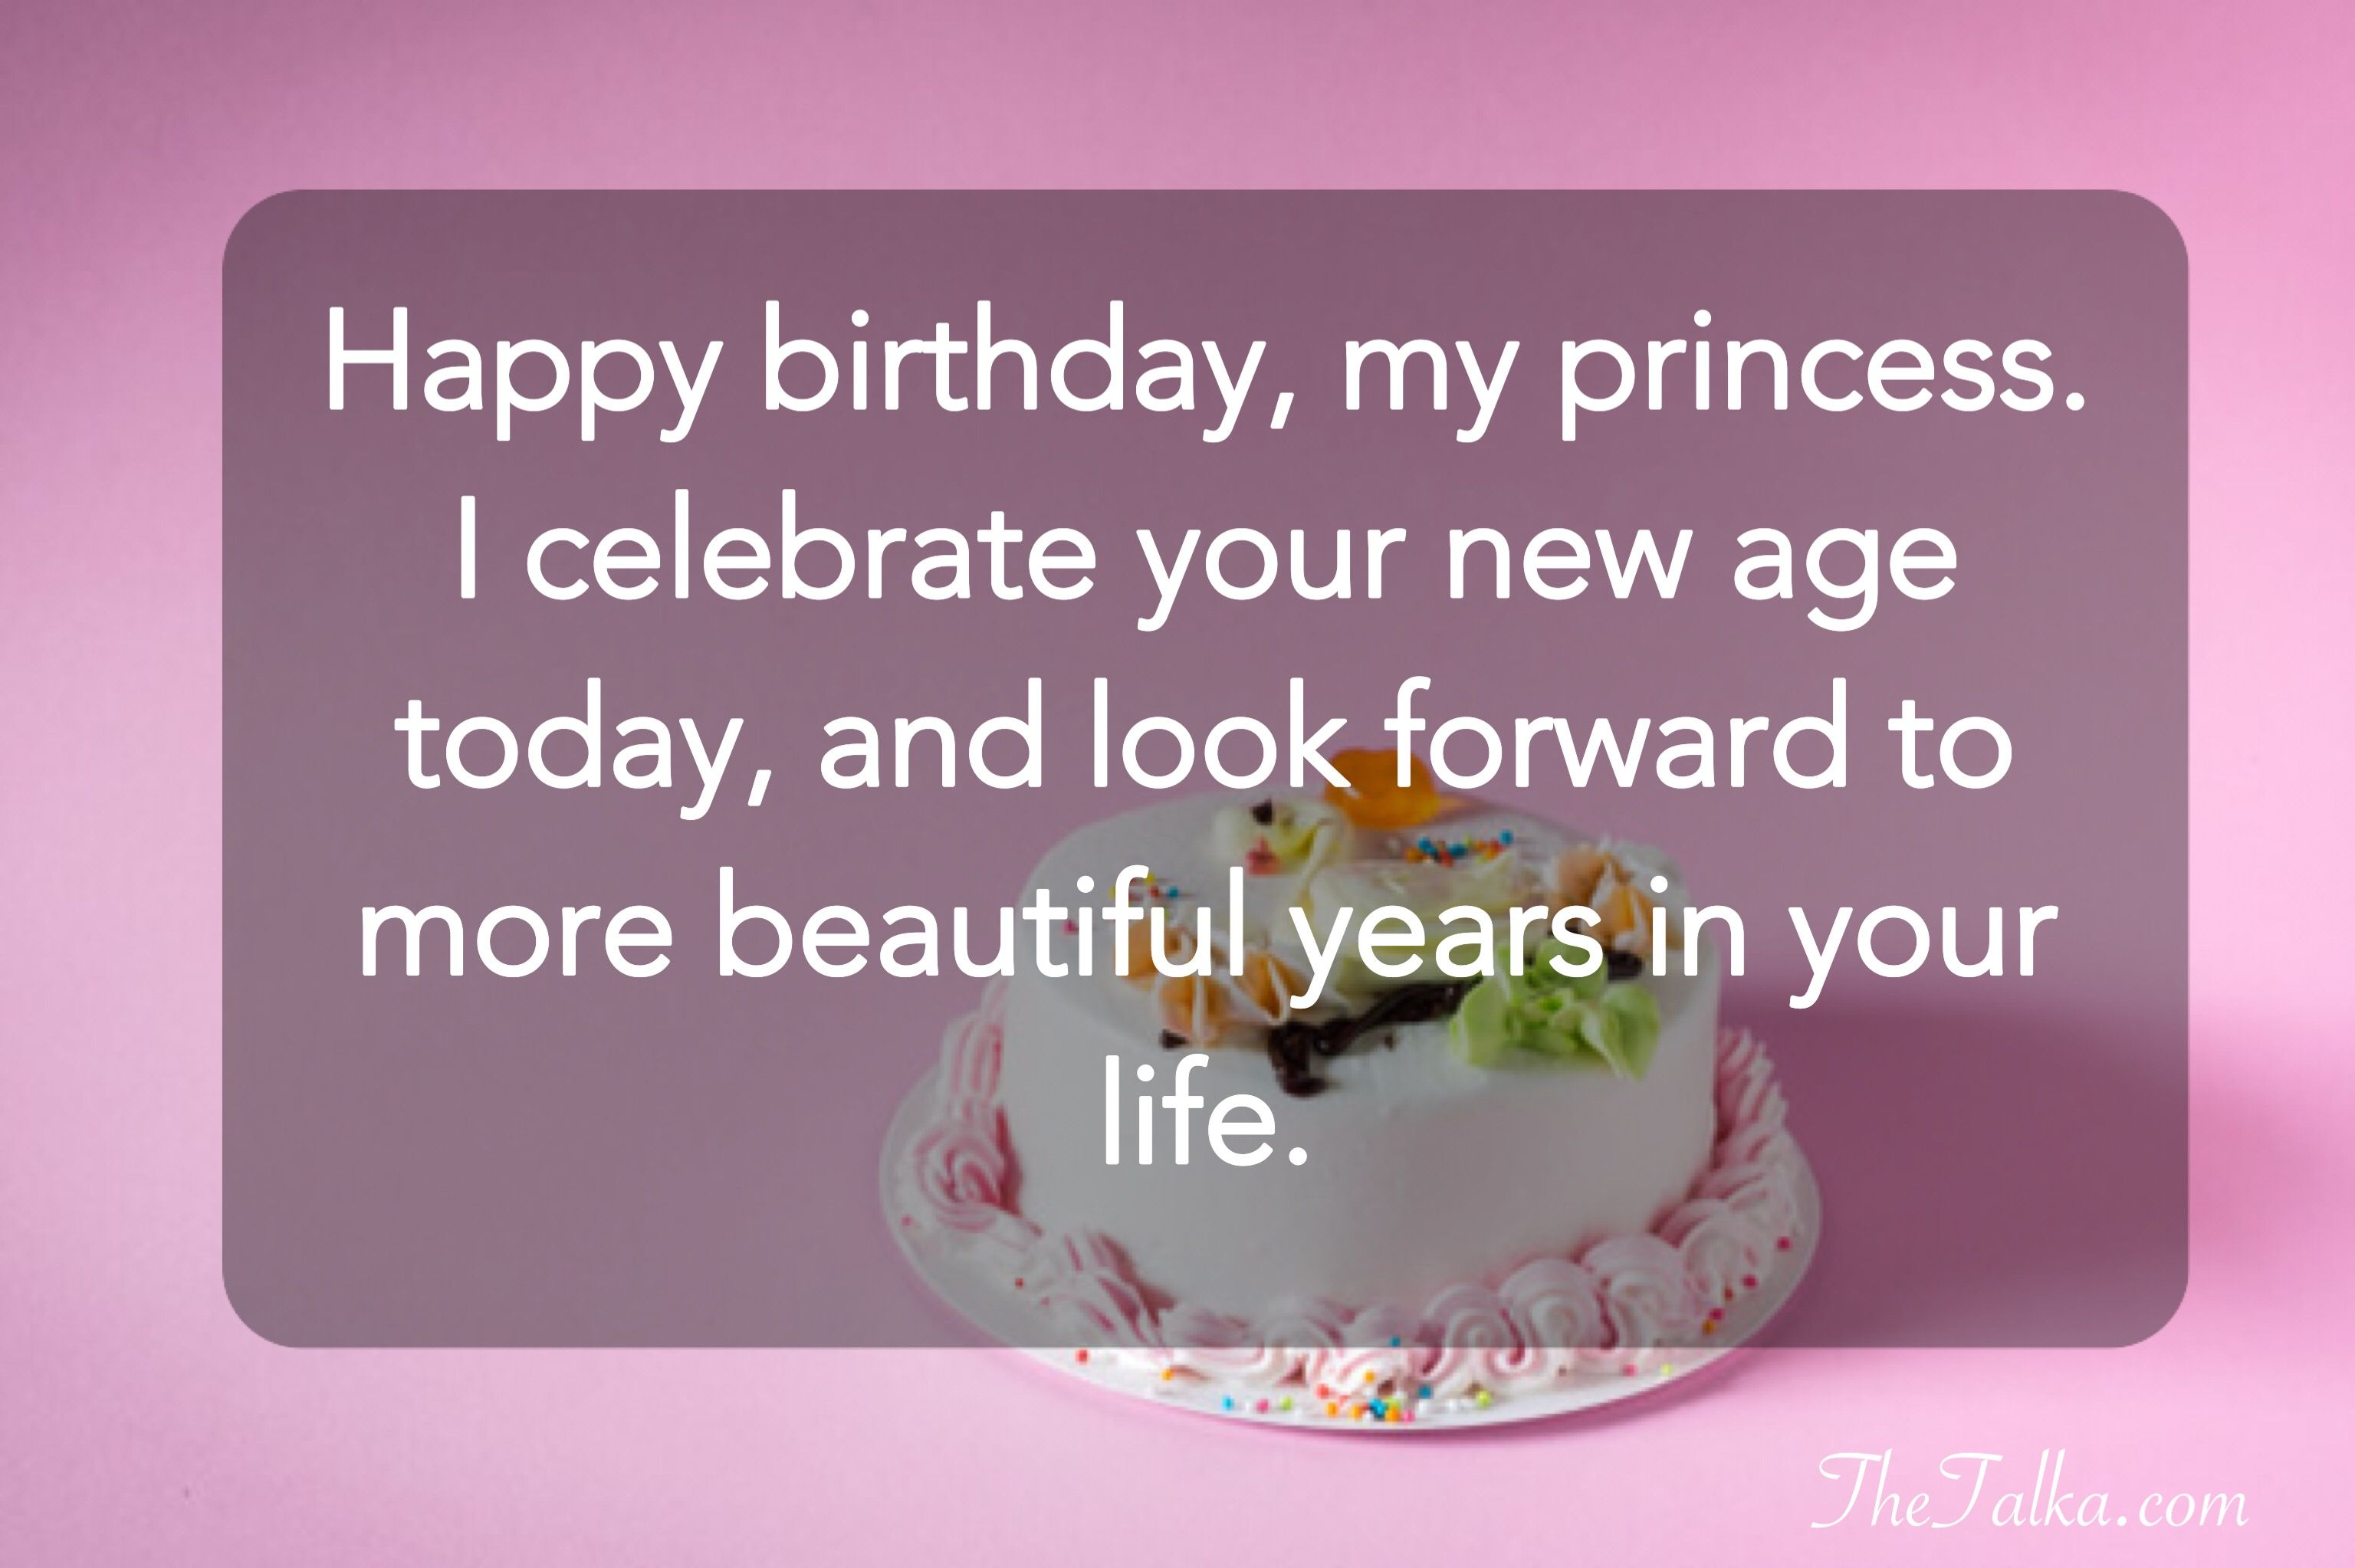 Birthday Wishes For Daughter Heartwarming Prayers Funny Happy Birthday Wishes Images Happy Birthday Wishes Birthday Wishes For Daughter